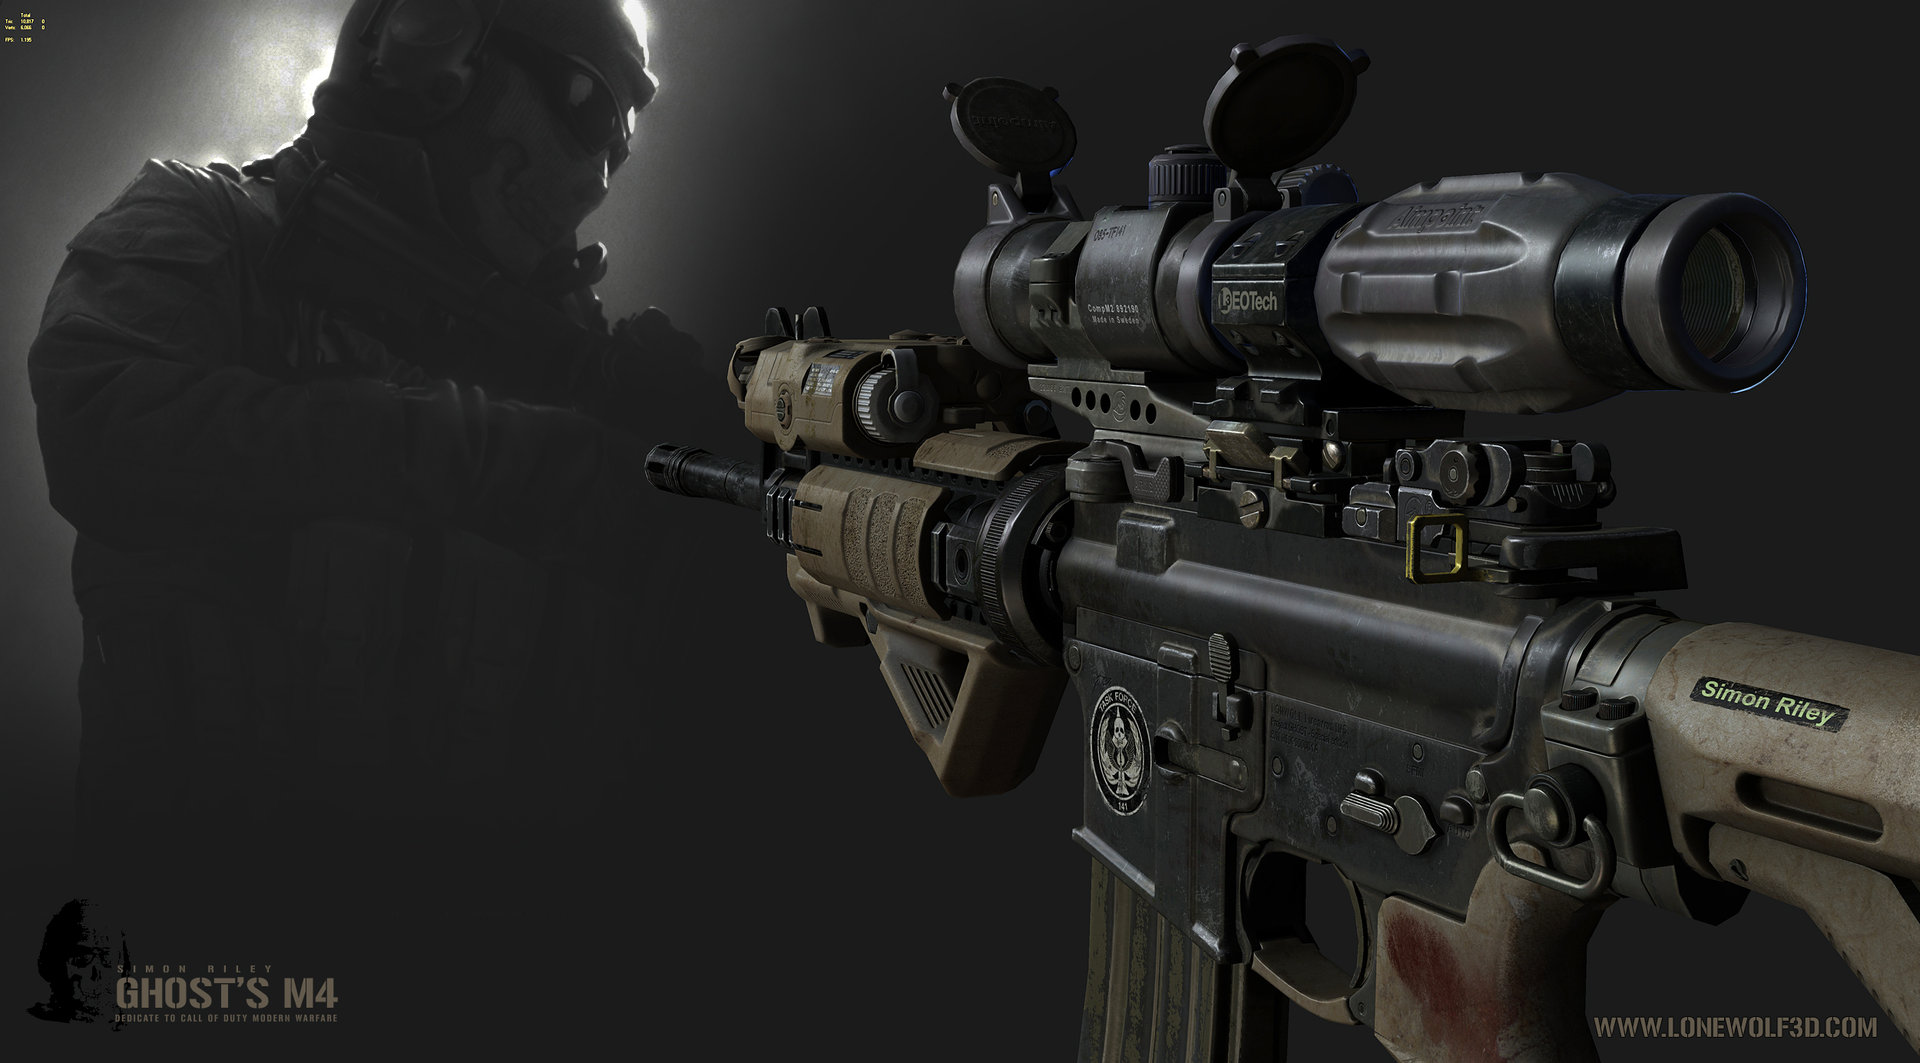 Ghost m4 call of duty 2500